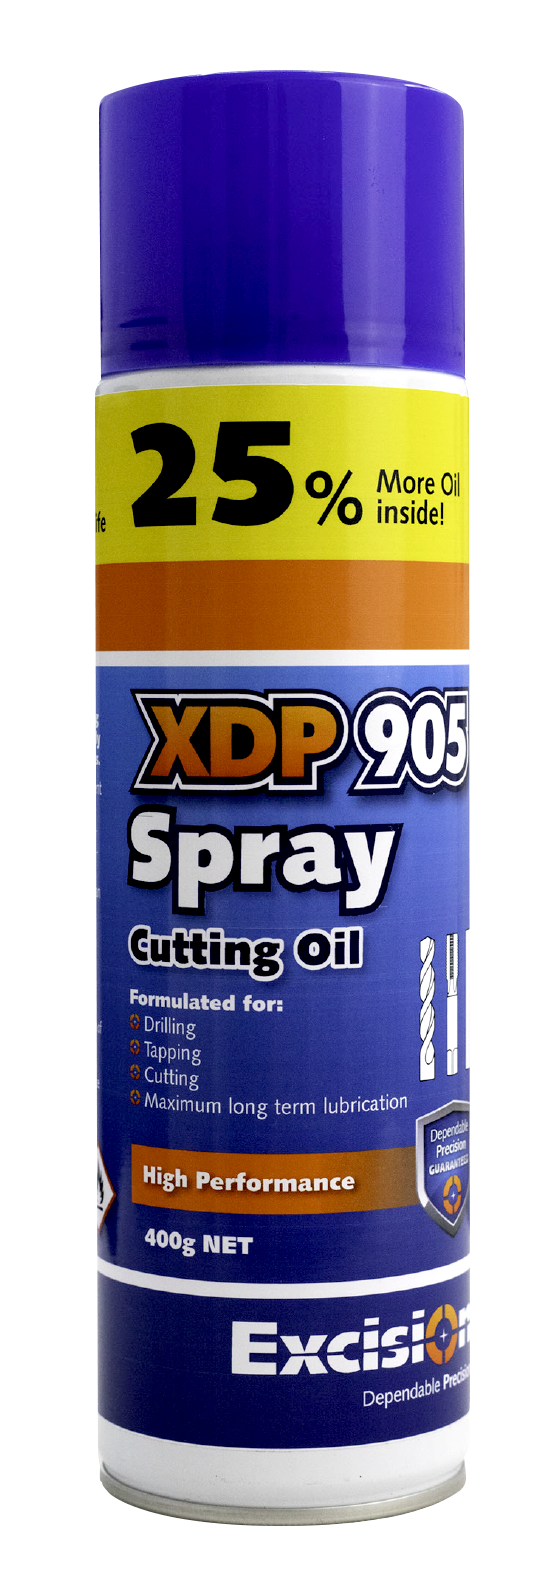 XDP905 SPRAY - 400G (NEW CAN)